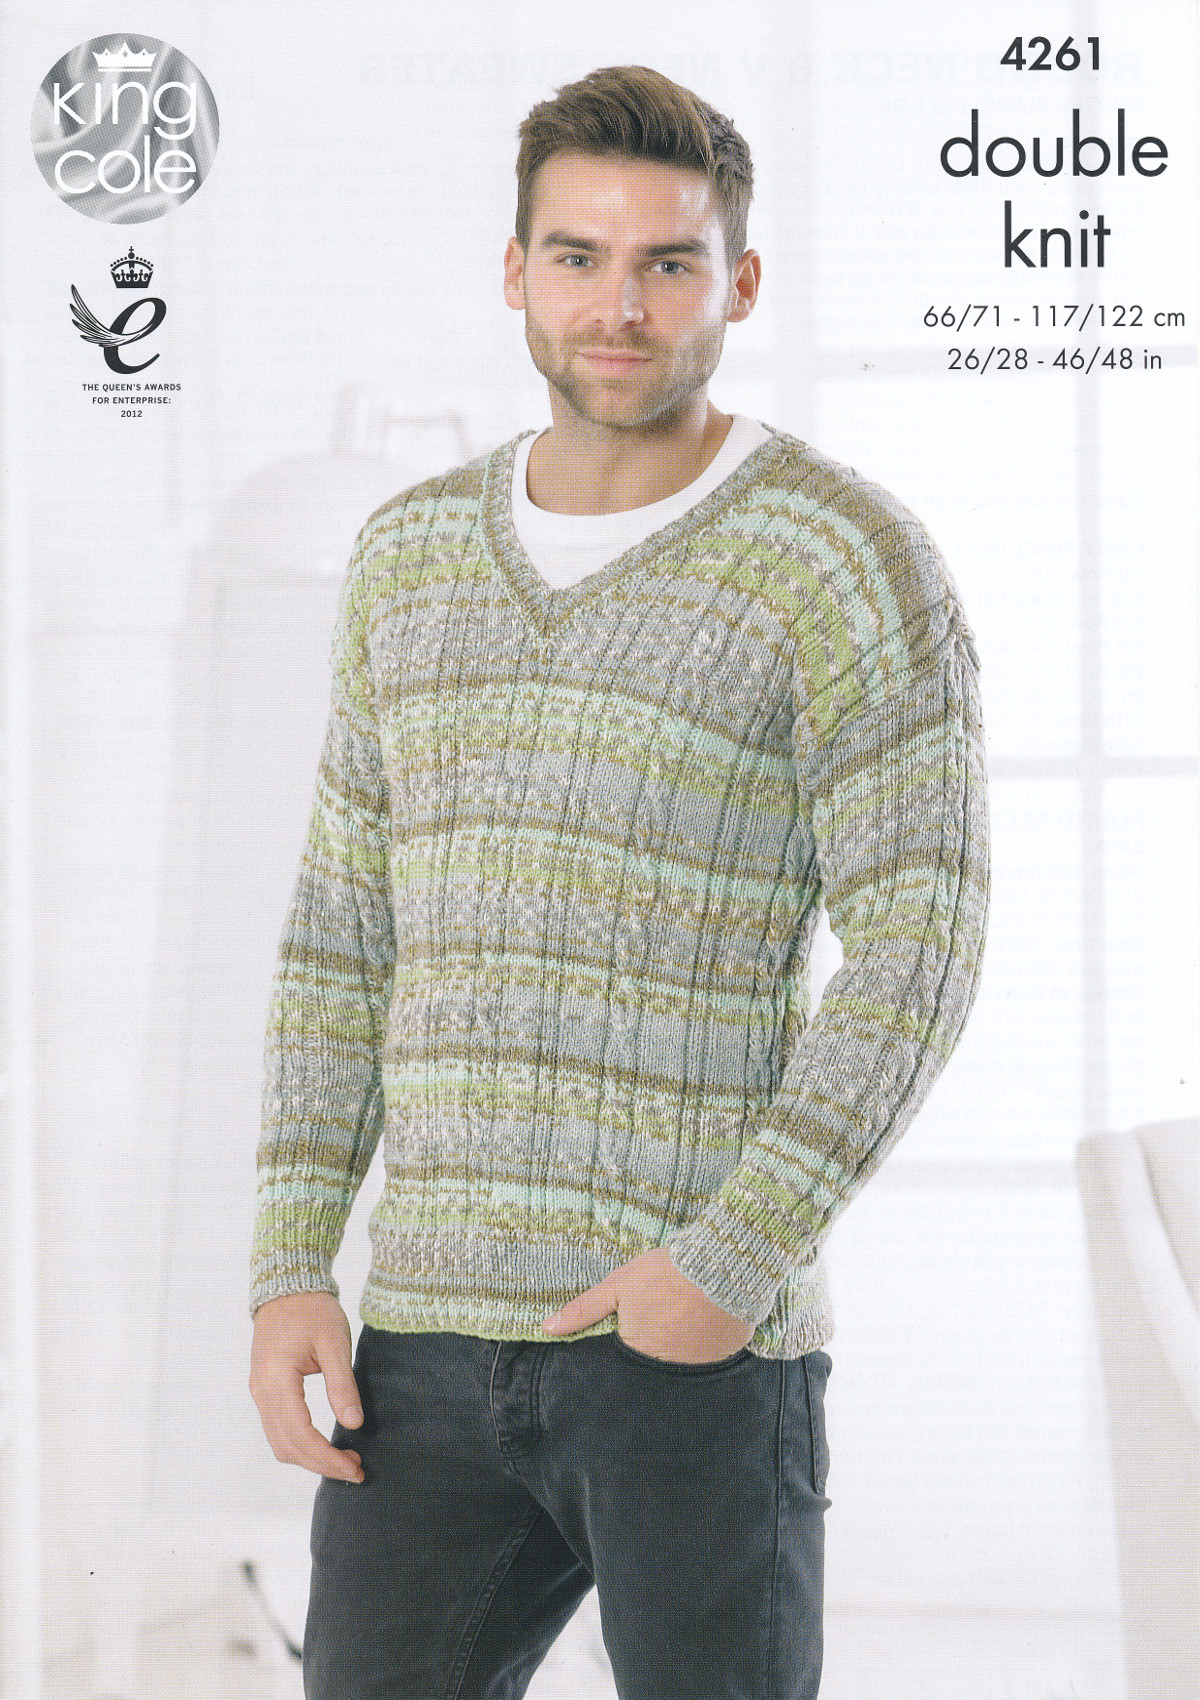 Double Knitting In The Round Patterns : King cole mens double knitting pattern cable knit round or